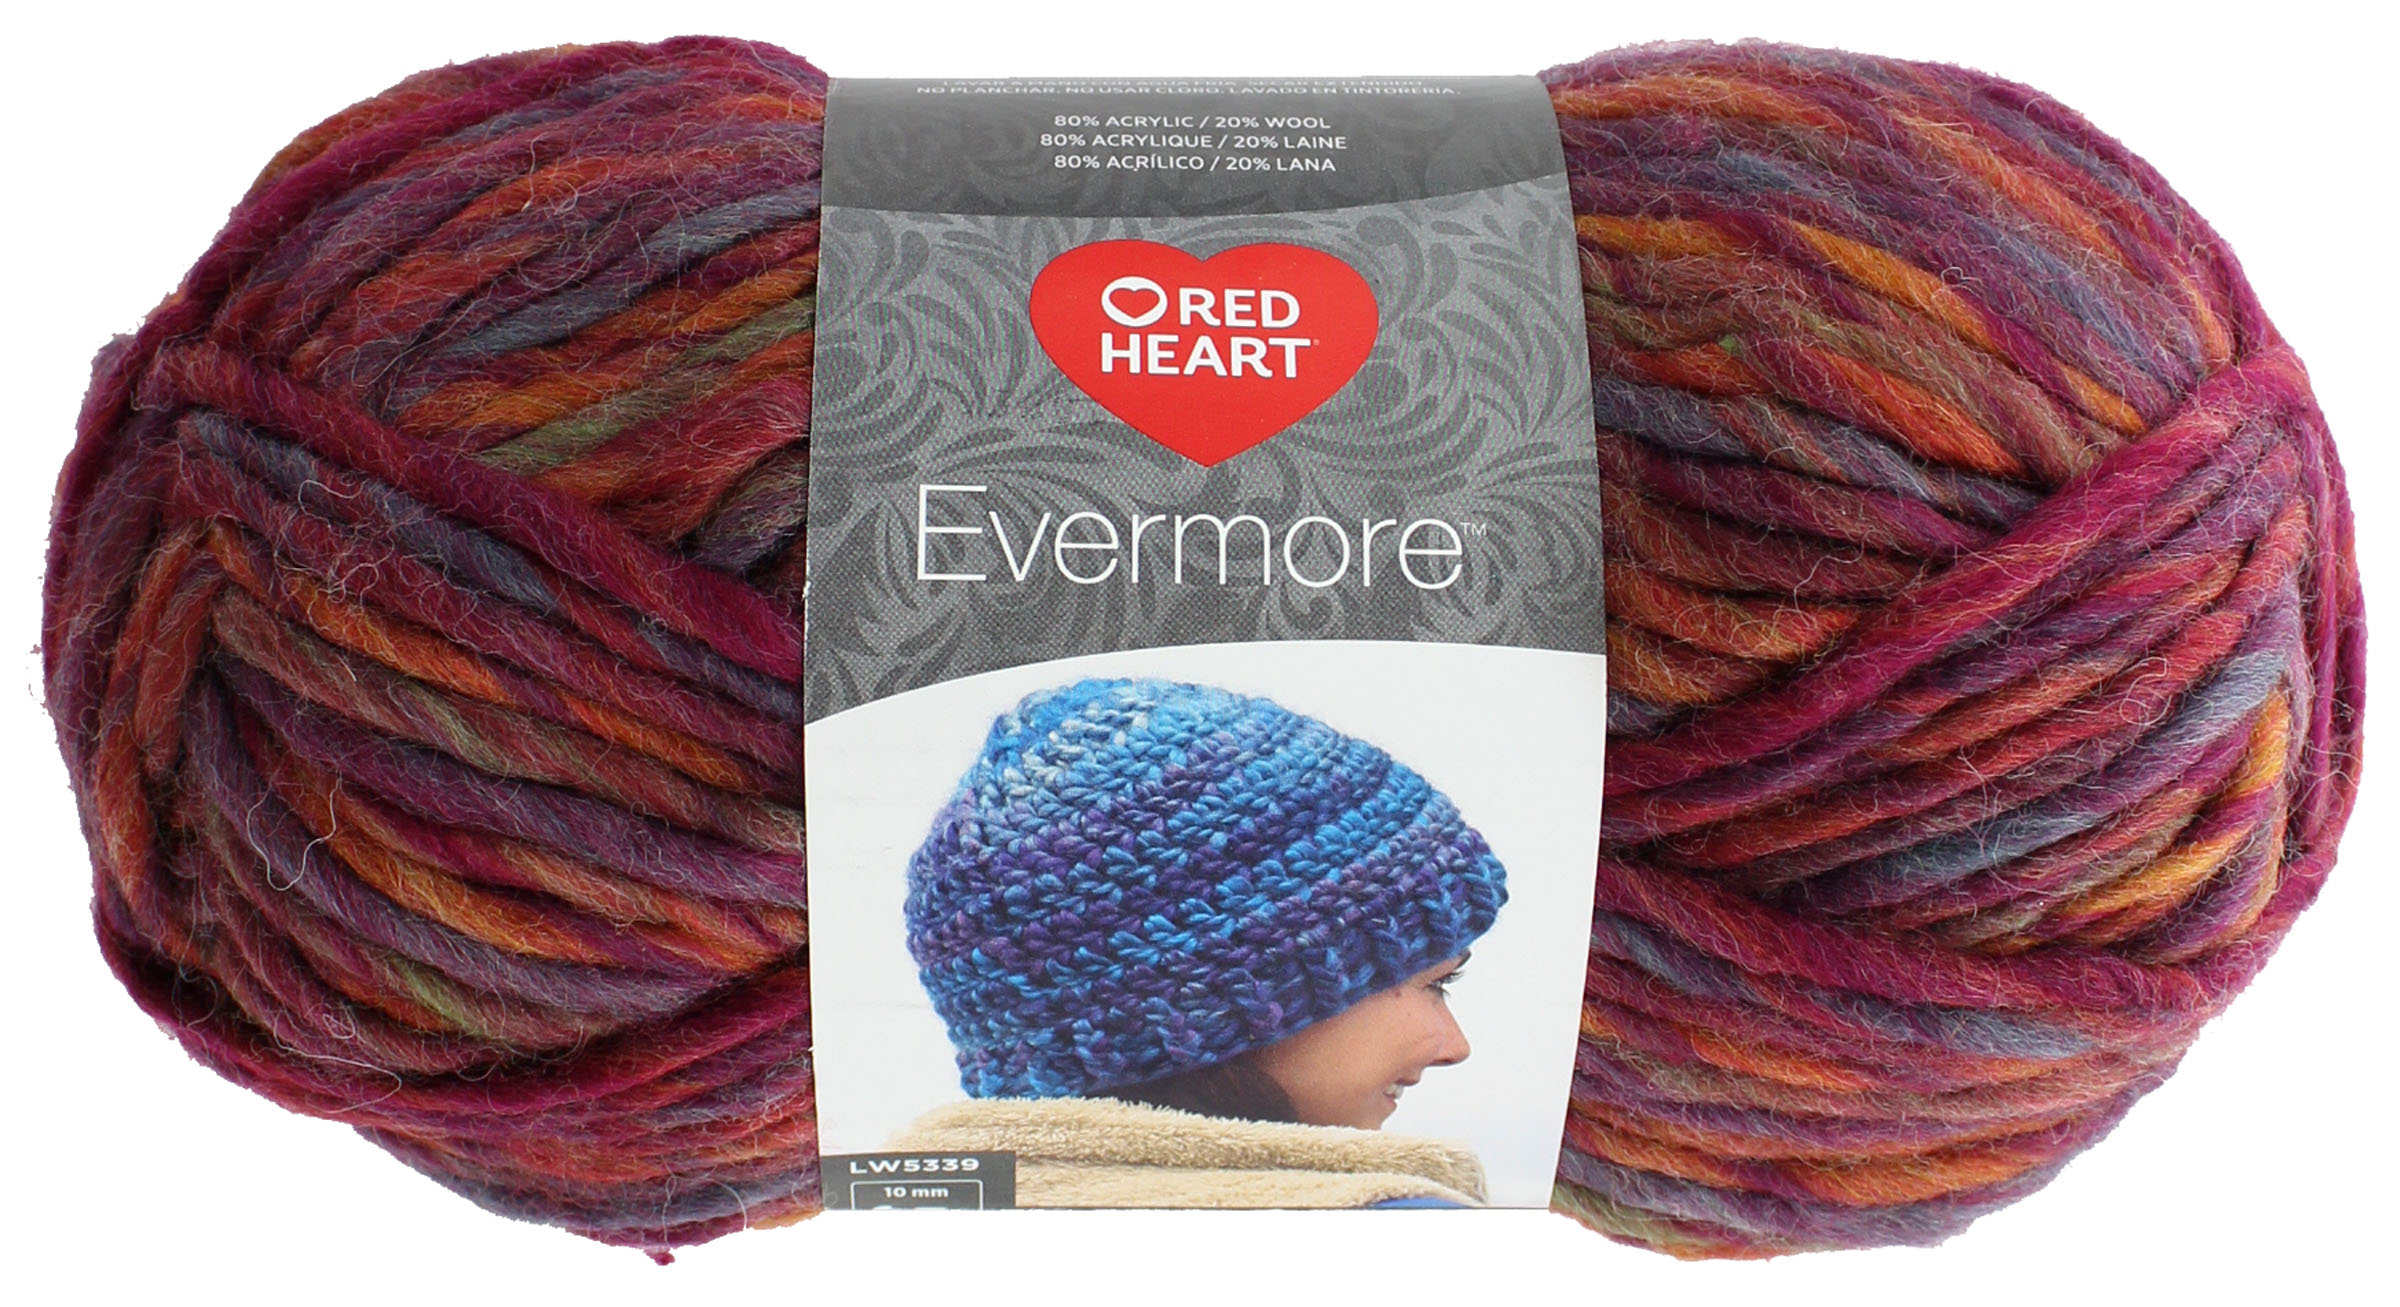 Red Heart Evermore Yarn Autumn 073650019722